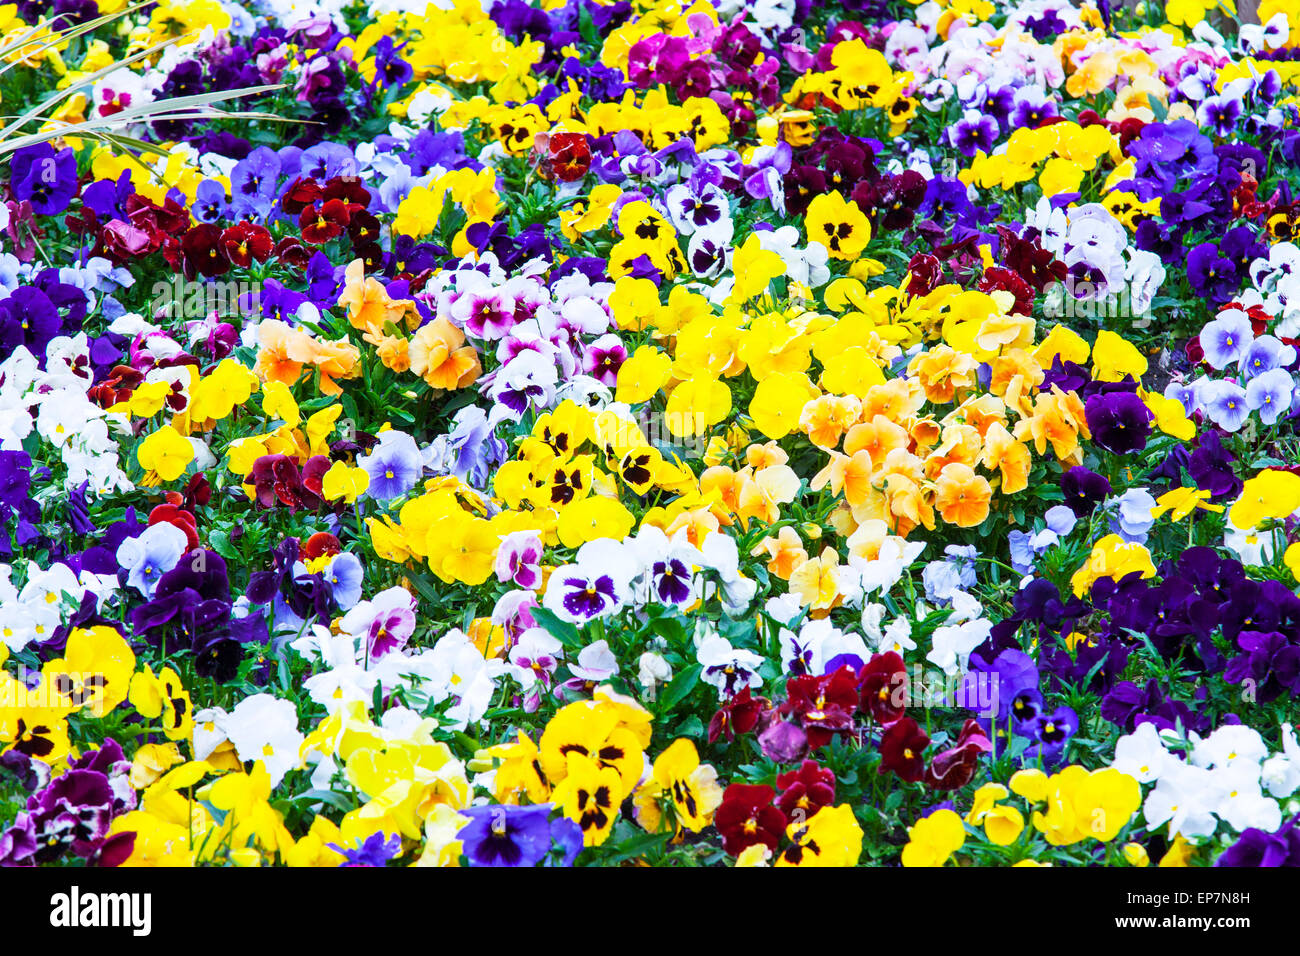 Pansies Pansy Flower Flowers Viola Tricolor Subsp Tricolor